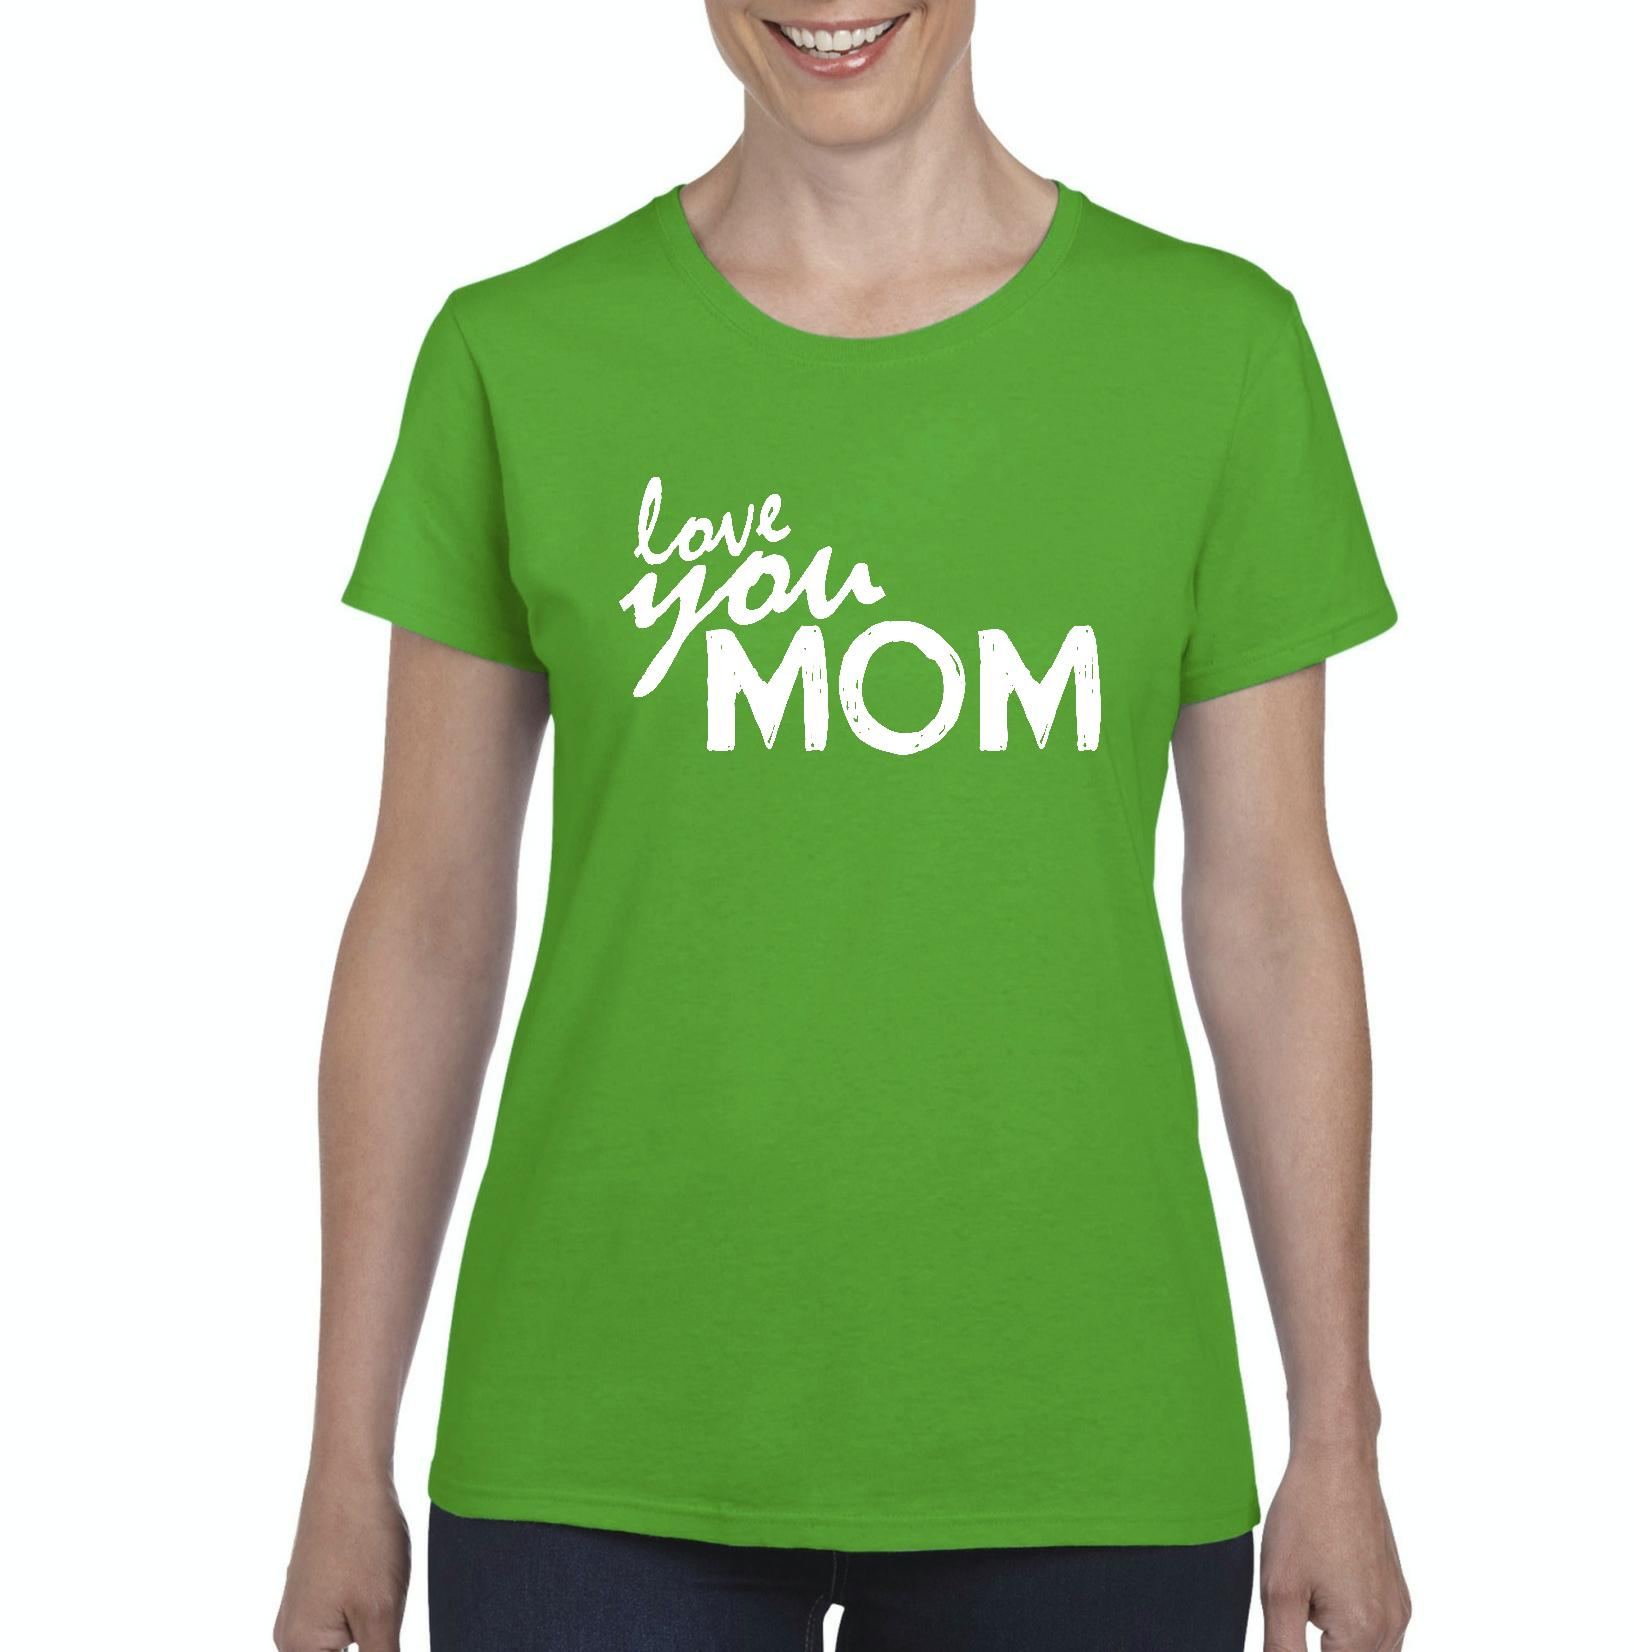 Artix Love You Mom Matching w Dad Gift for Mother's Day Birthday Christmas Women's T-shirt Tee Clothes